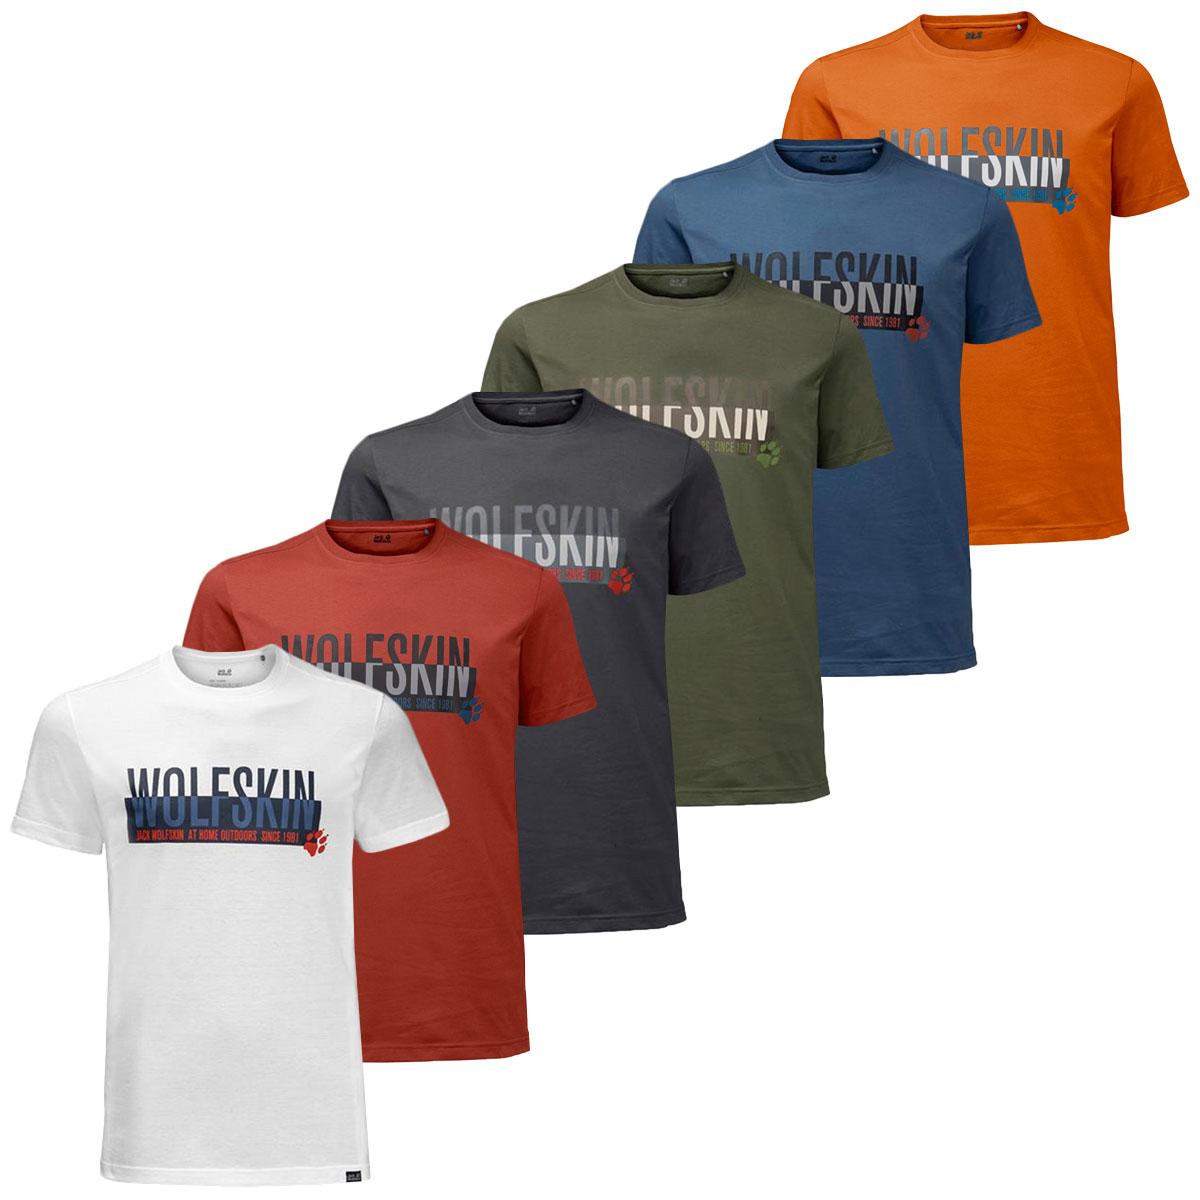 Large Jack Wolfskin Mens Slogan T T-Shirt Short Sleeve Ocean Wave